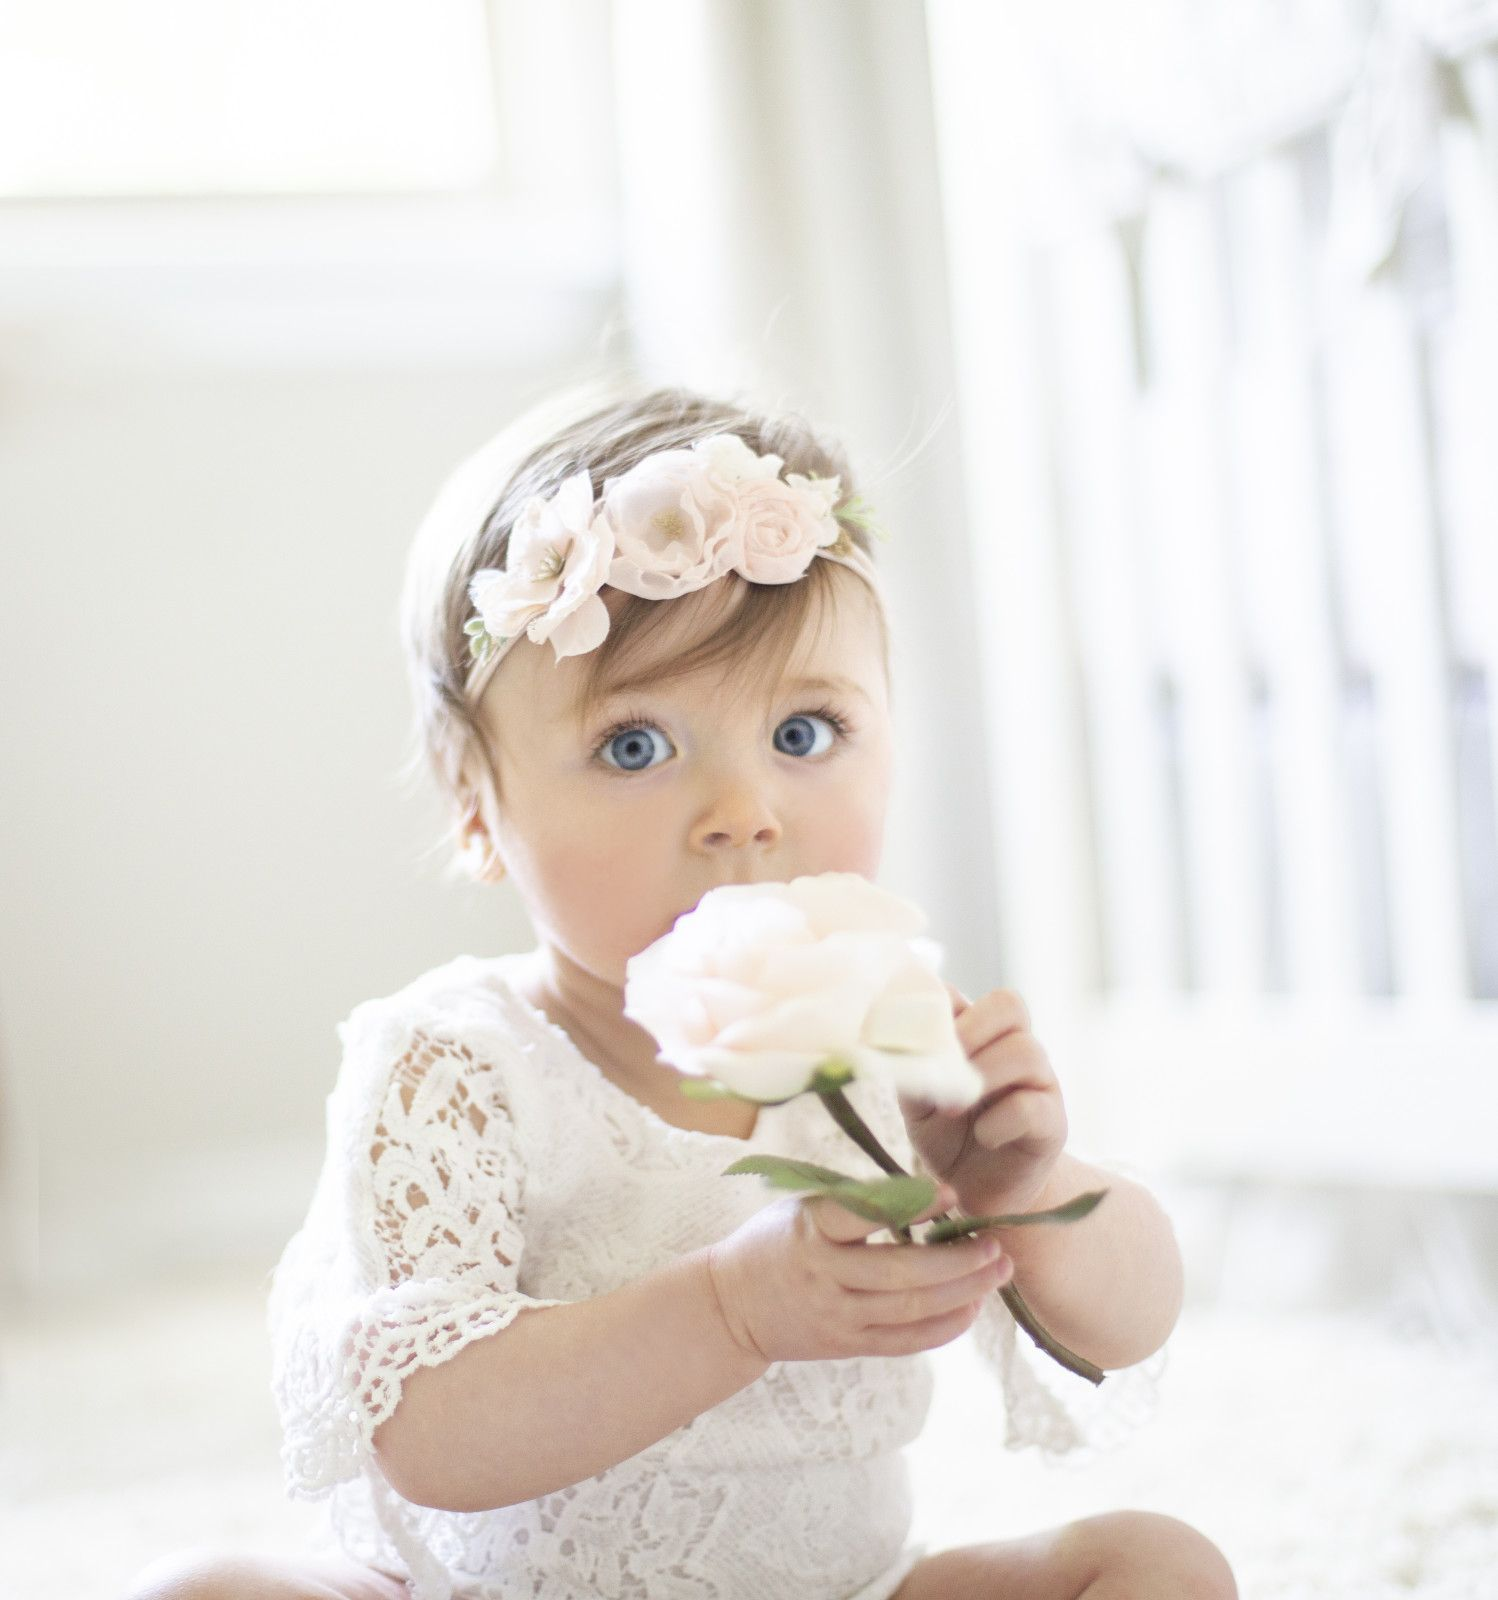 Baby girl pink flower headband  Baby white lace dress  One year